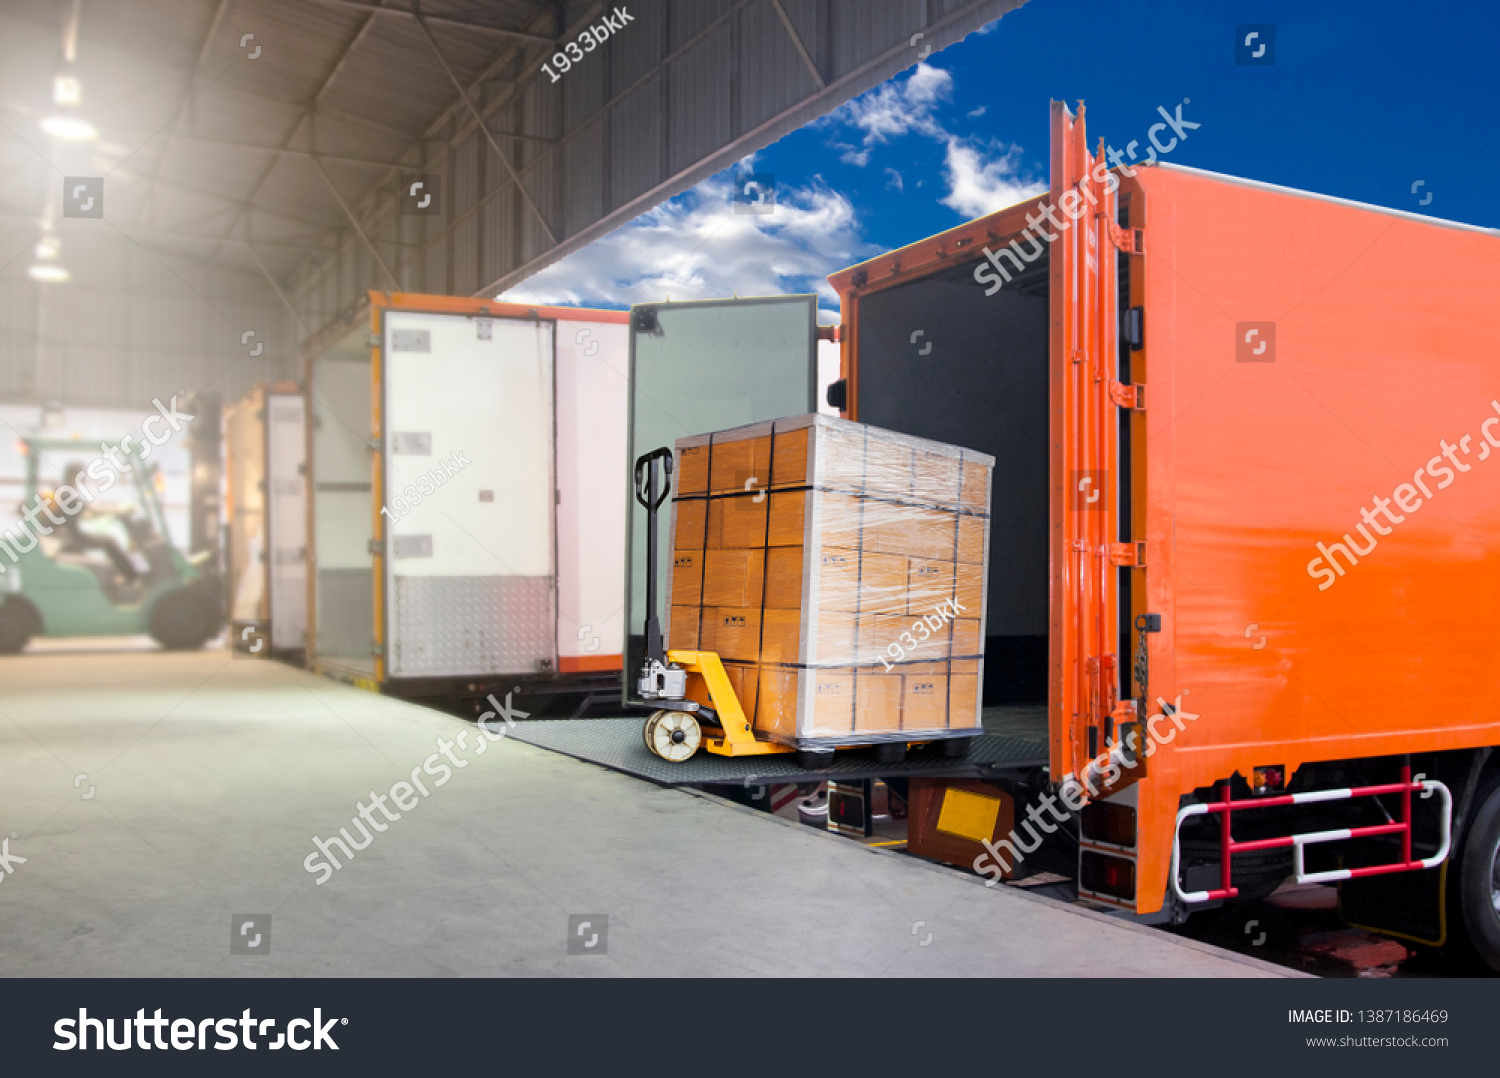 Distribution warehouse and Logistics, freight industry transport by truck. Forklift loading cargo into a truck, trucks docking at warehouse #1387186469